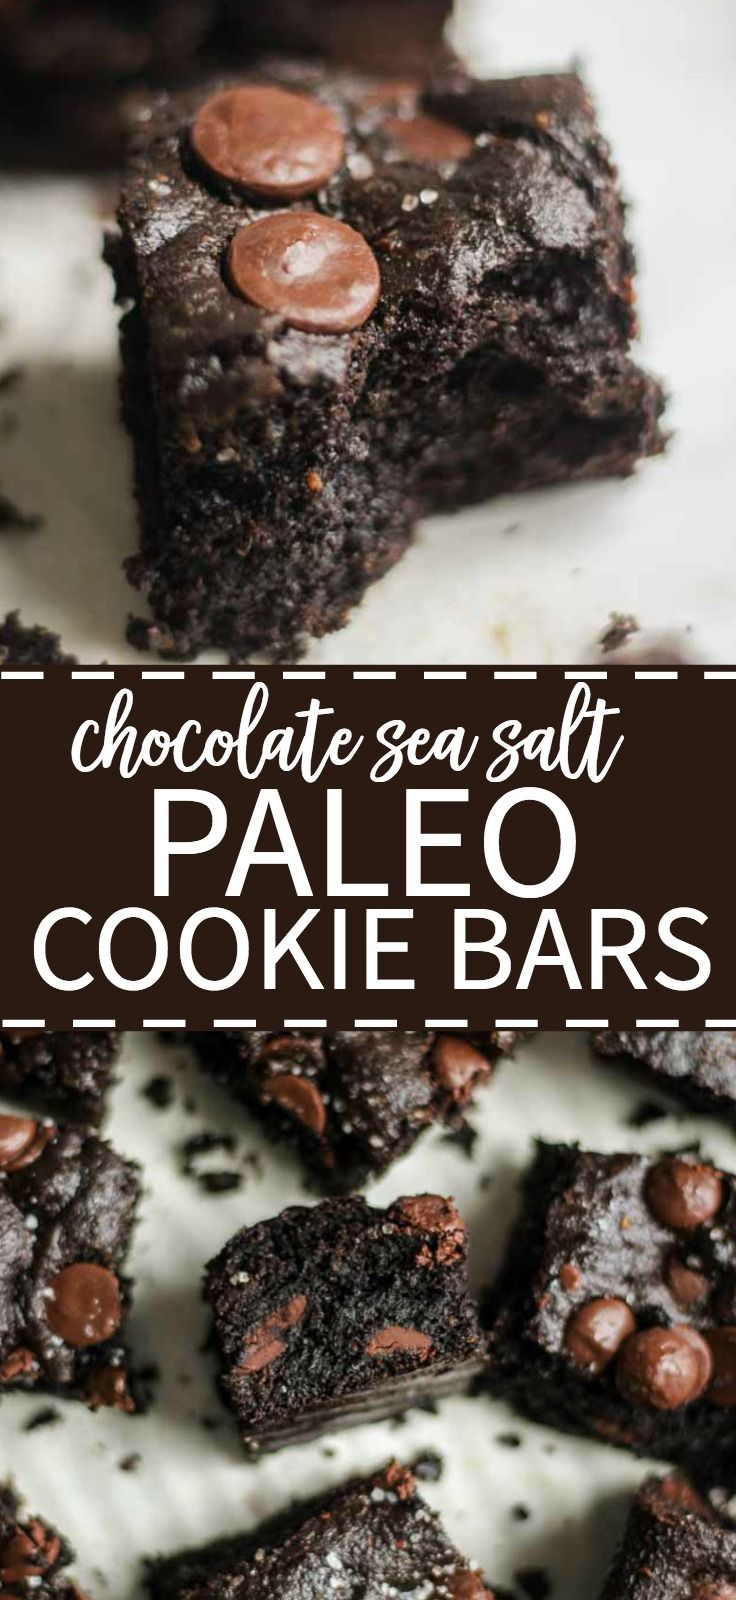 Paleo cookie bars that are so easy! This paleo recipe is made with double chocolate and sea salt with chocolate chip. They're dense and chewy and guilt free. This dessert is refined sugar free, gluten free and dairy free. Easy and healthy!